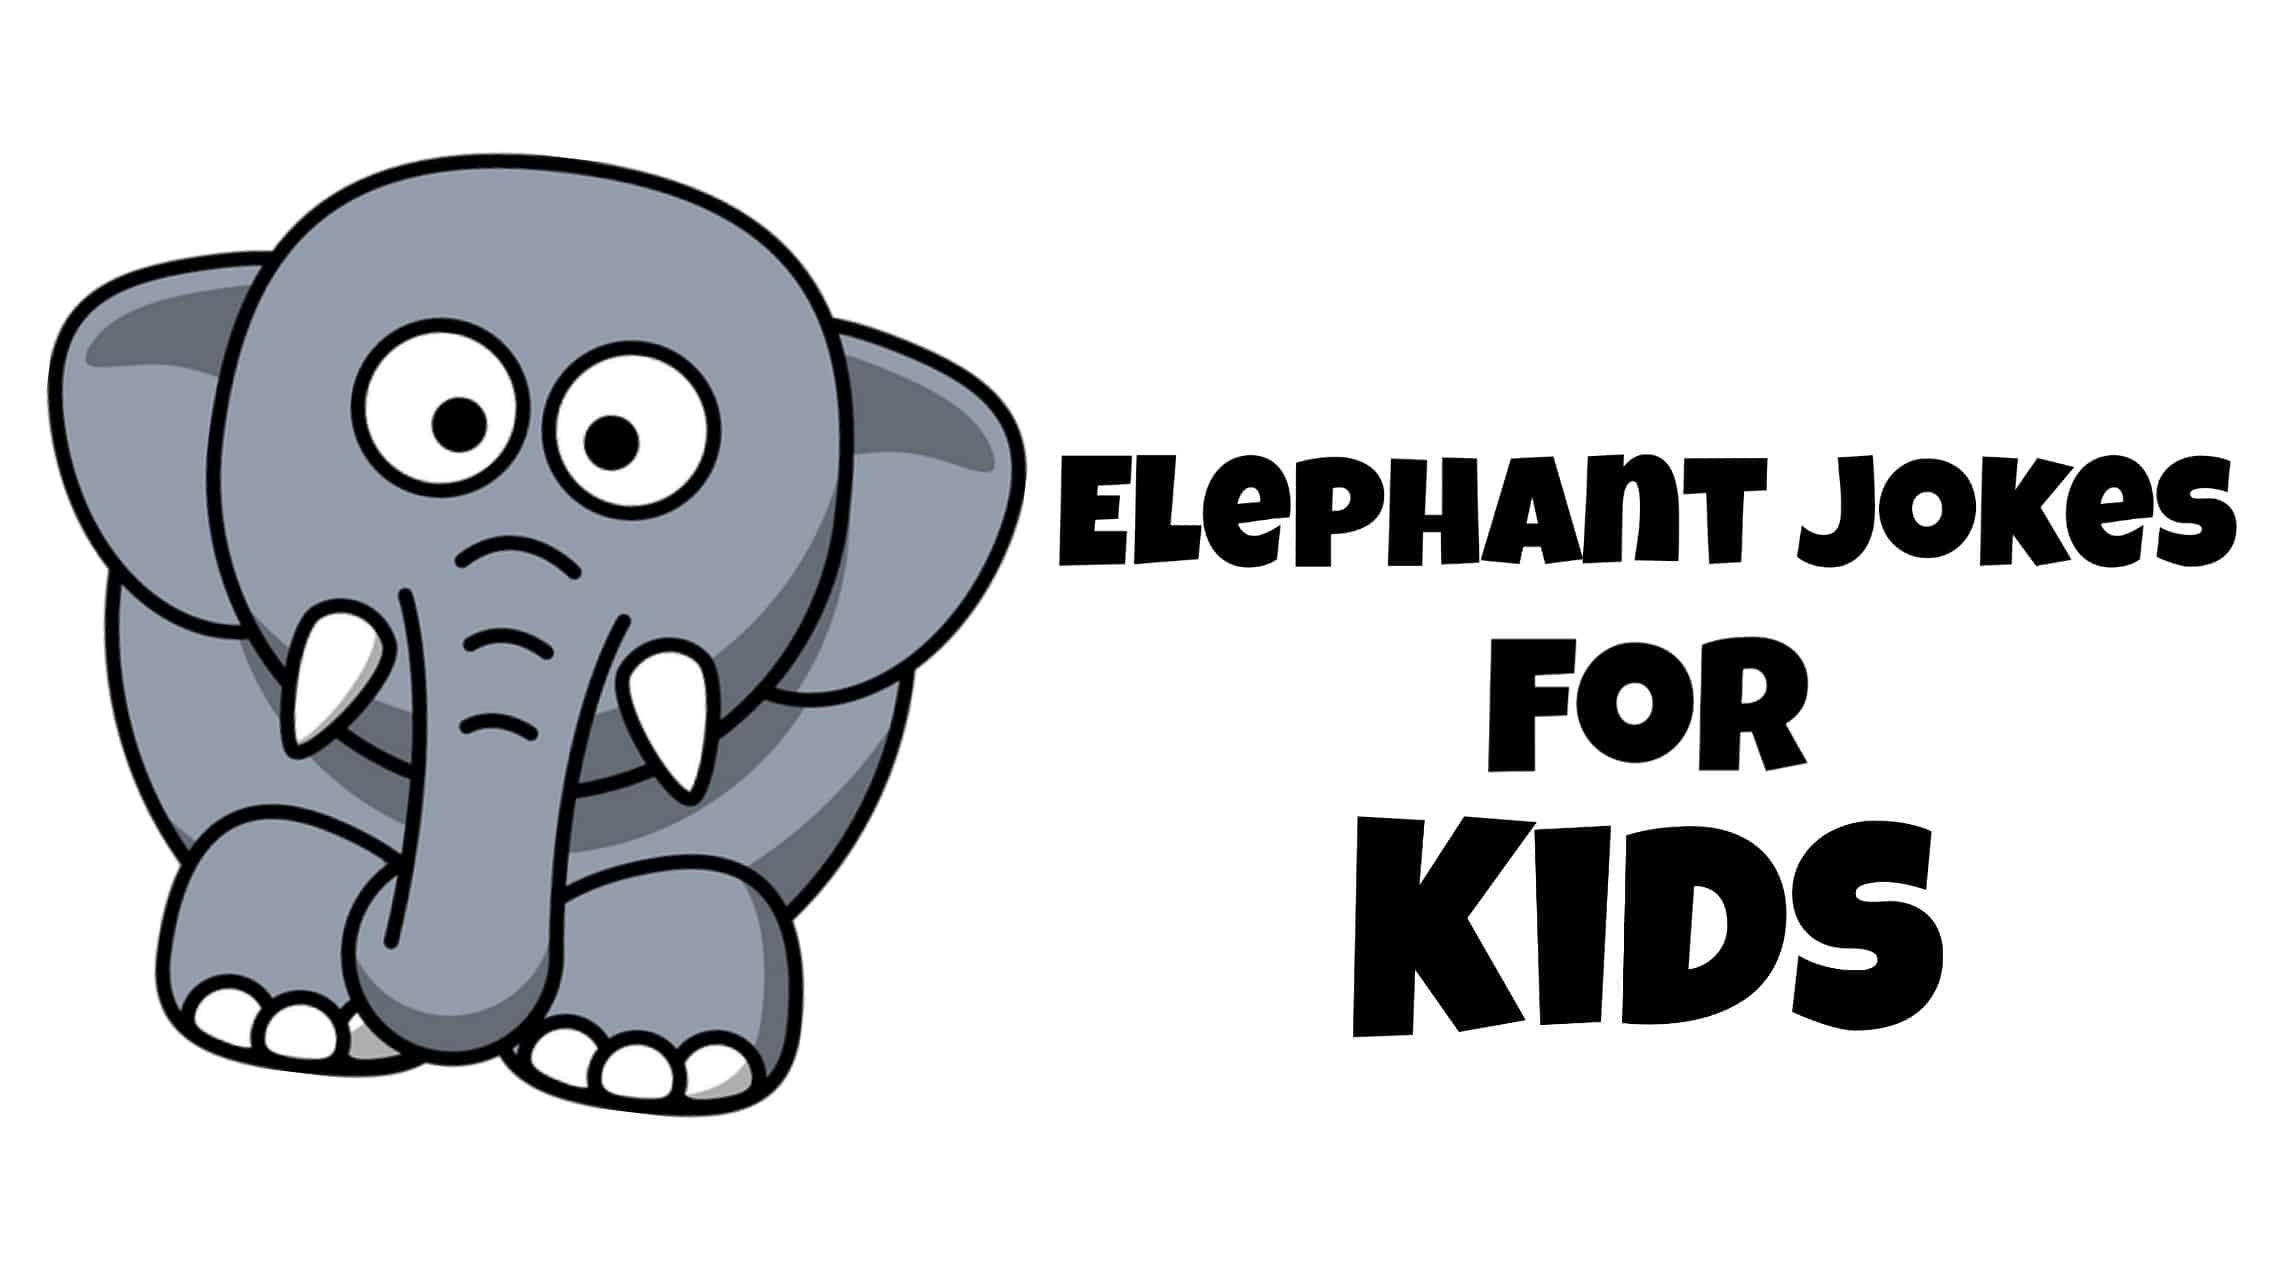 kids love to tell jokes, so today we bring you the best Elephant jokes for kids.